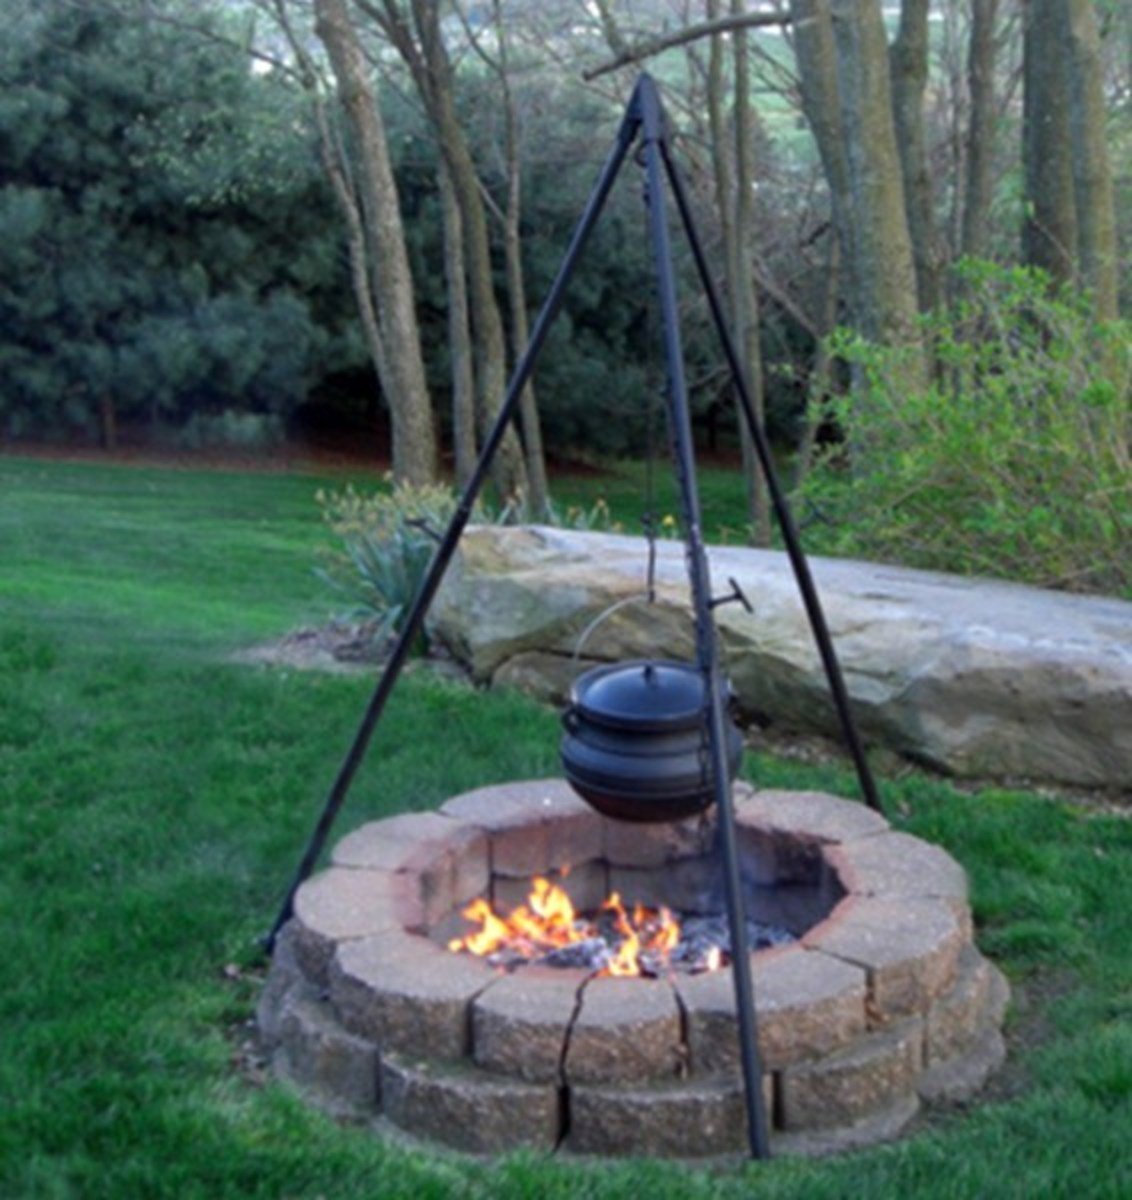 Professional Tripod and Cast Iron Pot